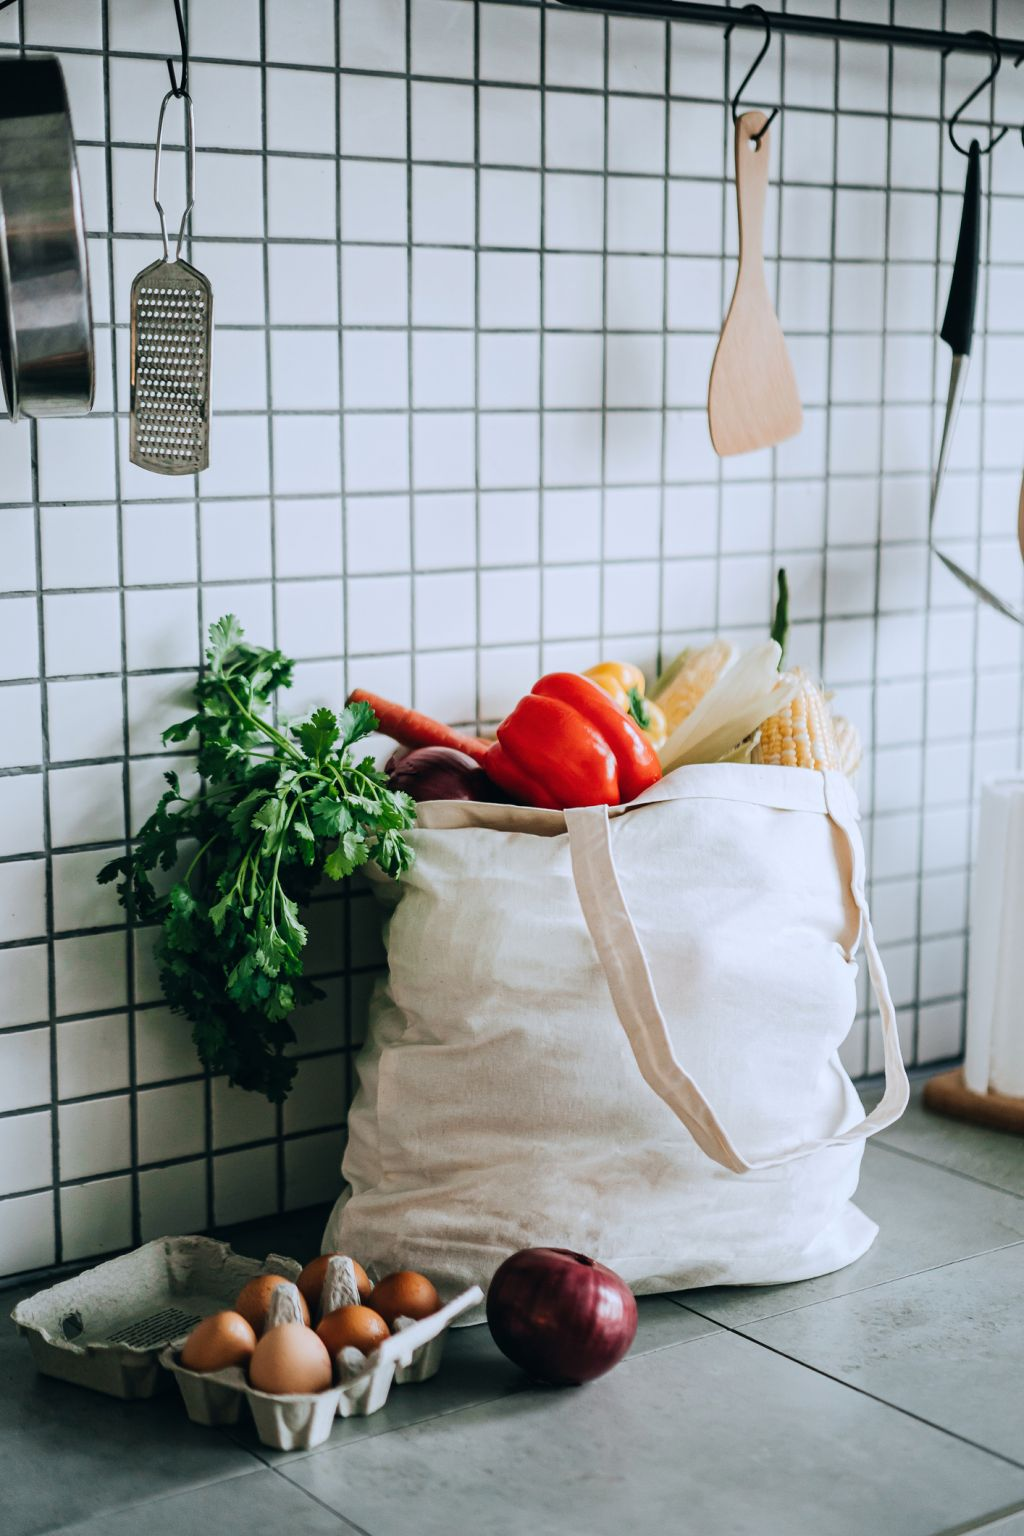 A reusable bag full of colourful and fresh organic vegetables and groceries on the kitchen counter. Zero waste shopping and sustainable lifestyle concept